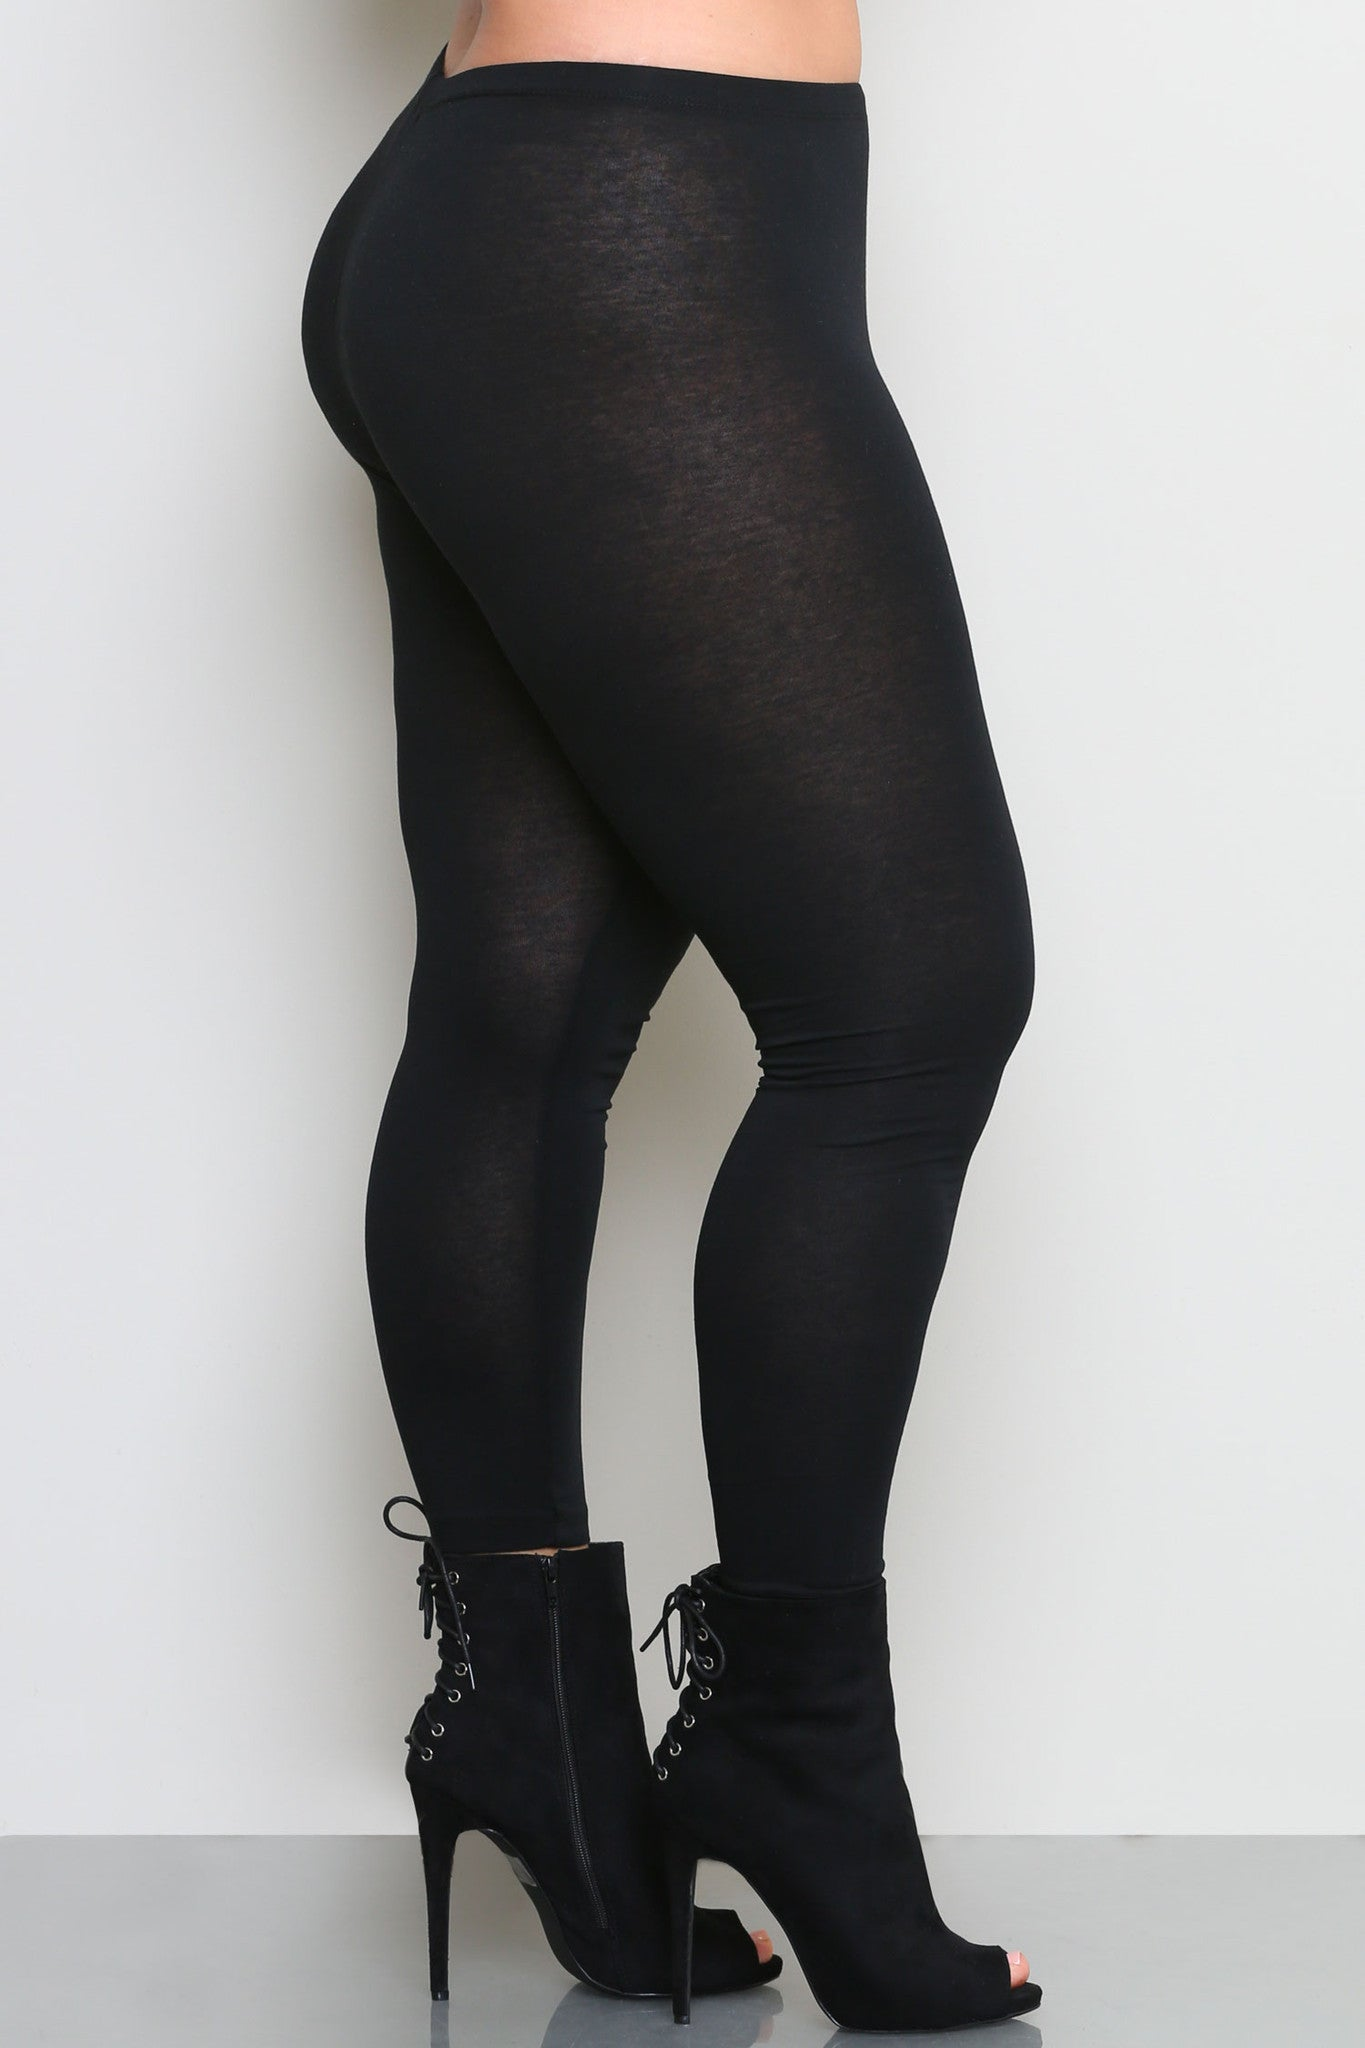 MARIA LEGGINGS - Glam Envy - 2